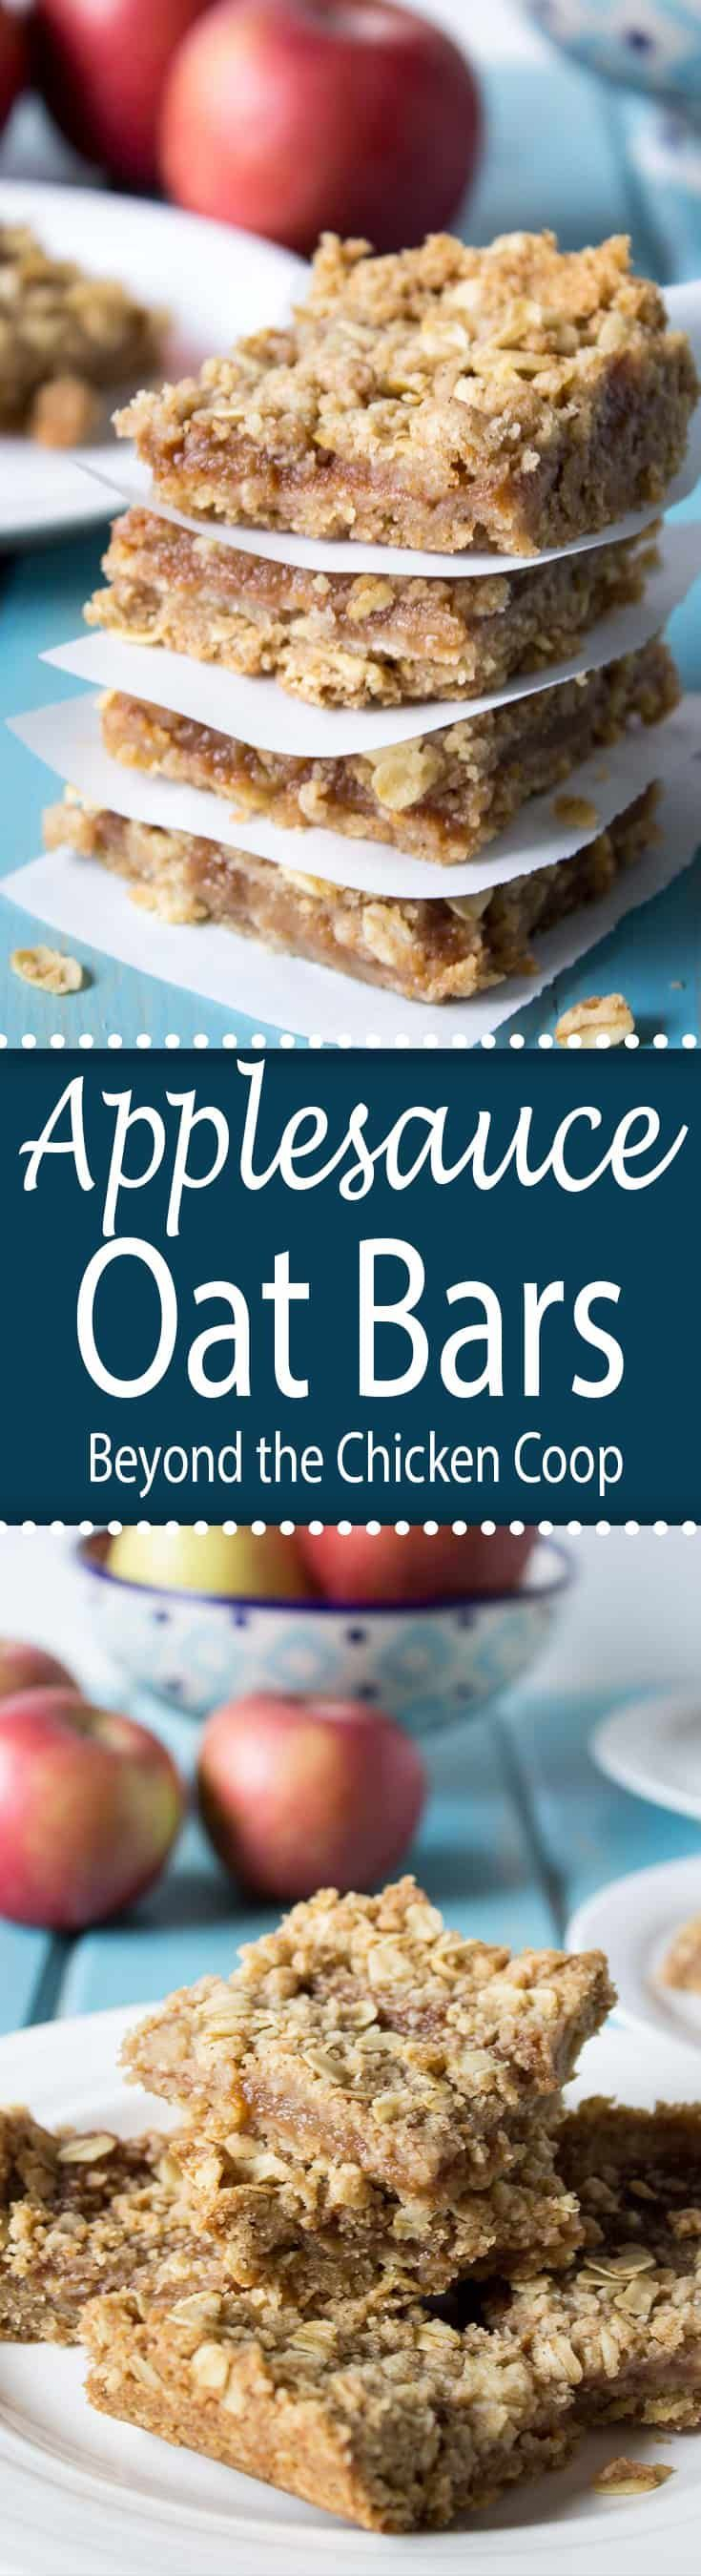 Layers of an oatmeal crumb crust with an applesauce filling make a delicious snack.  #oatmealbars #applesaucebars #dessert #snack